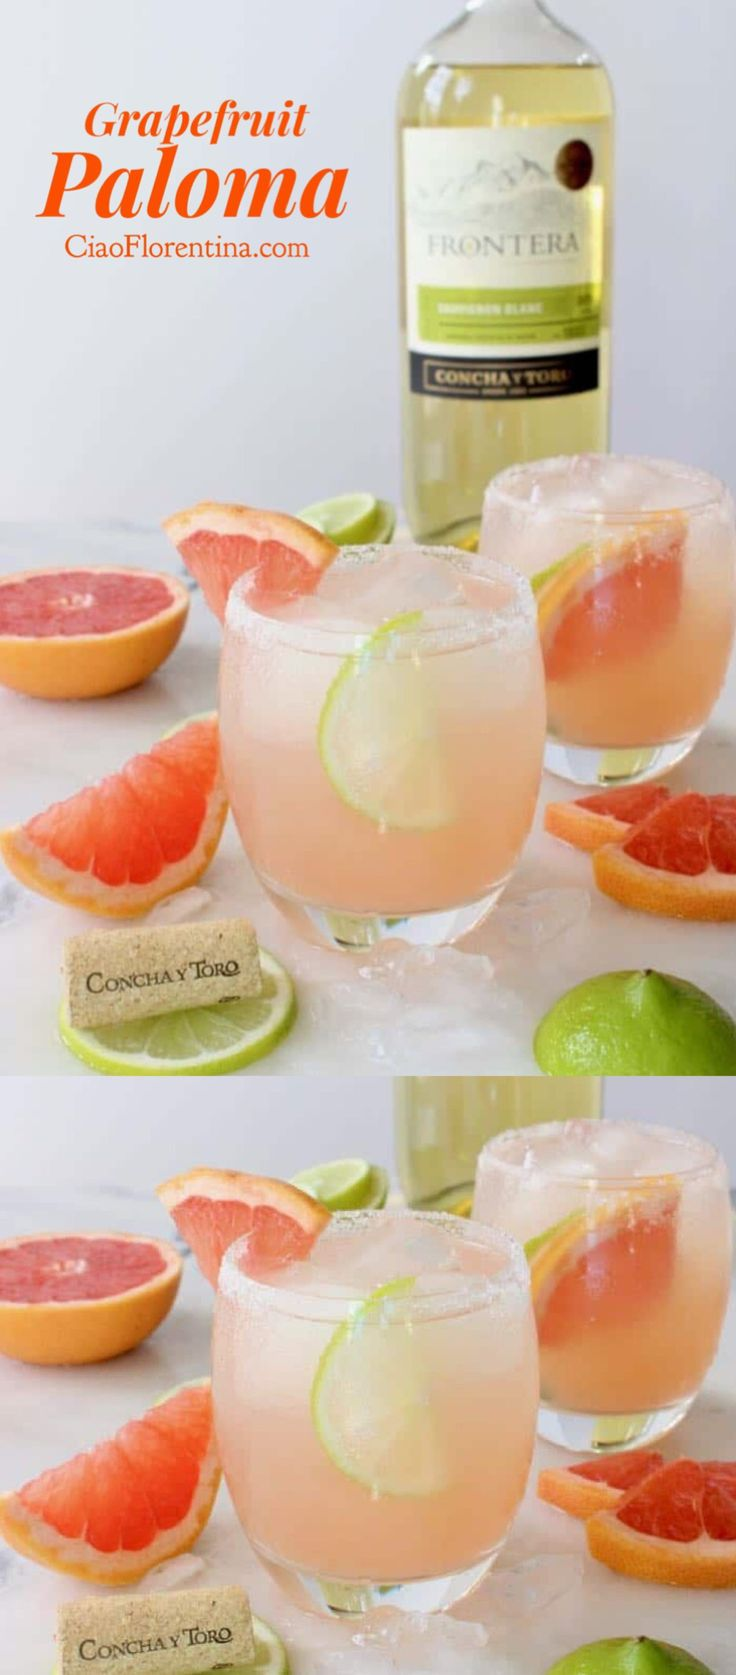 Paloma Cocktail Recipe | CiaoFlorentina.com @CiaoFlorentina